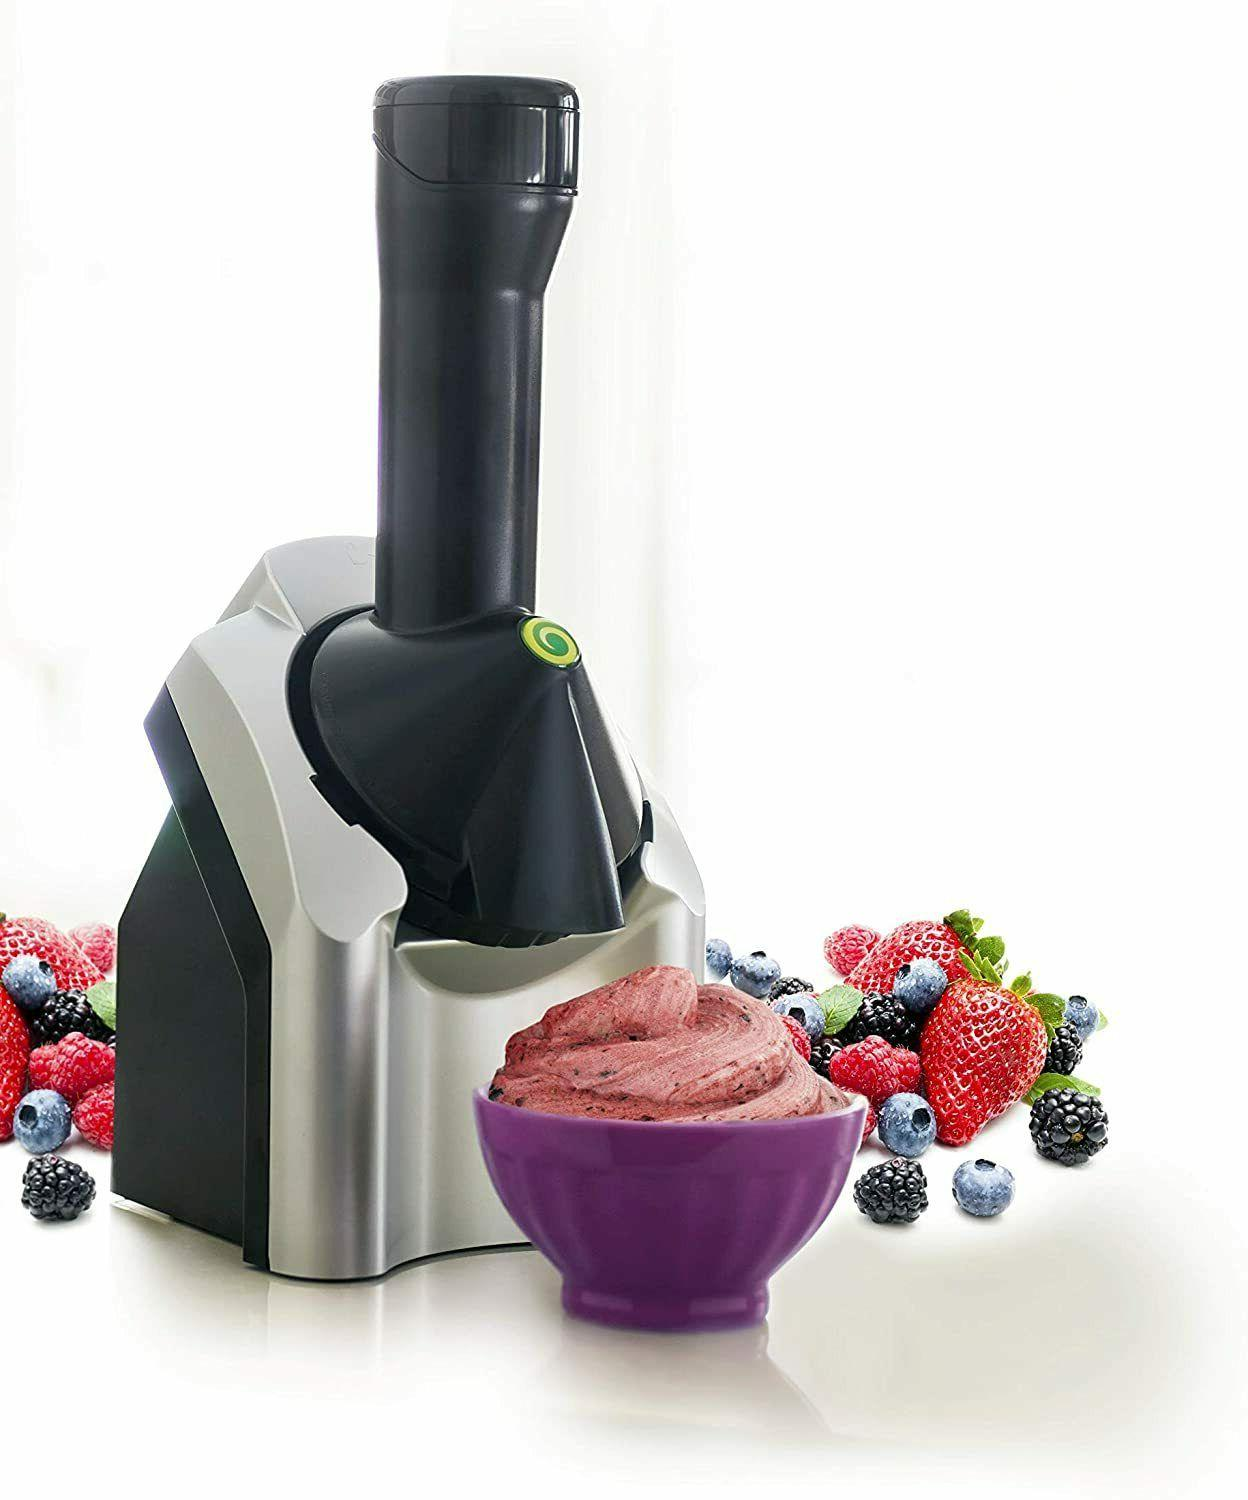 Yonanas Classic Dessert Fruit Soft Maker Fast